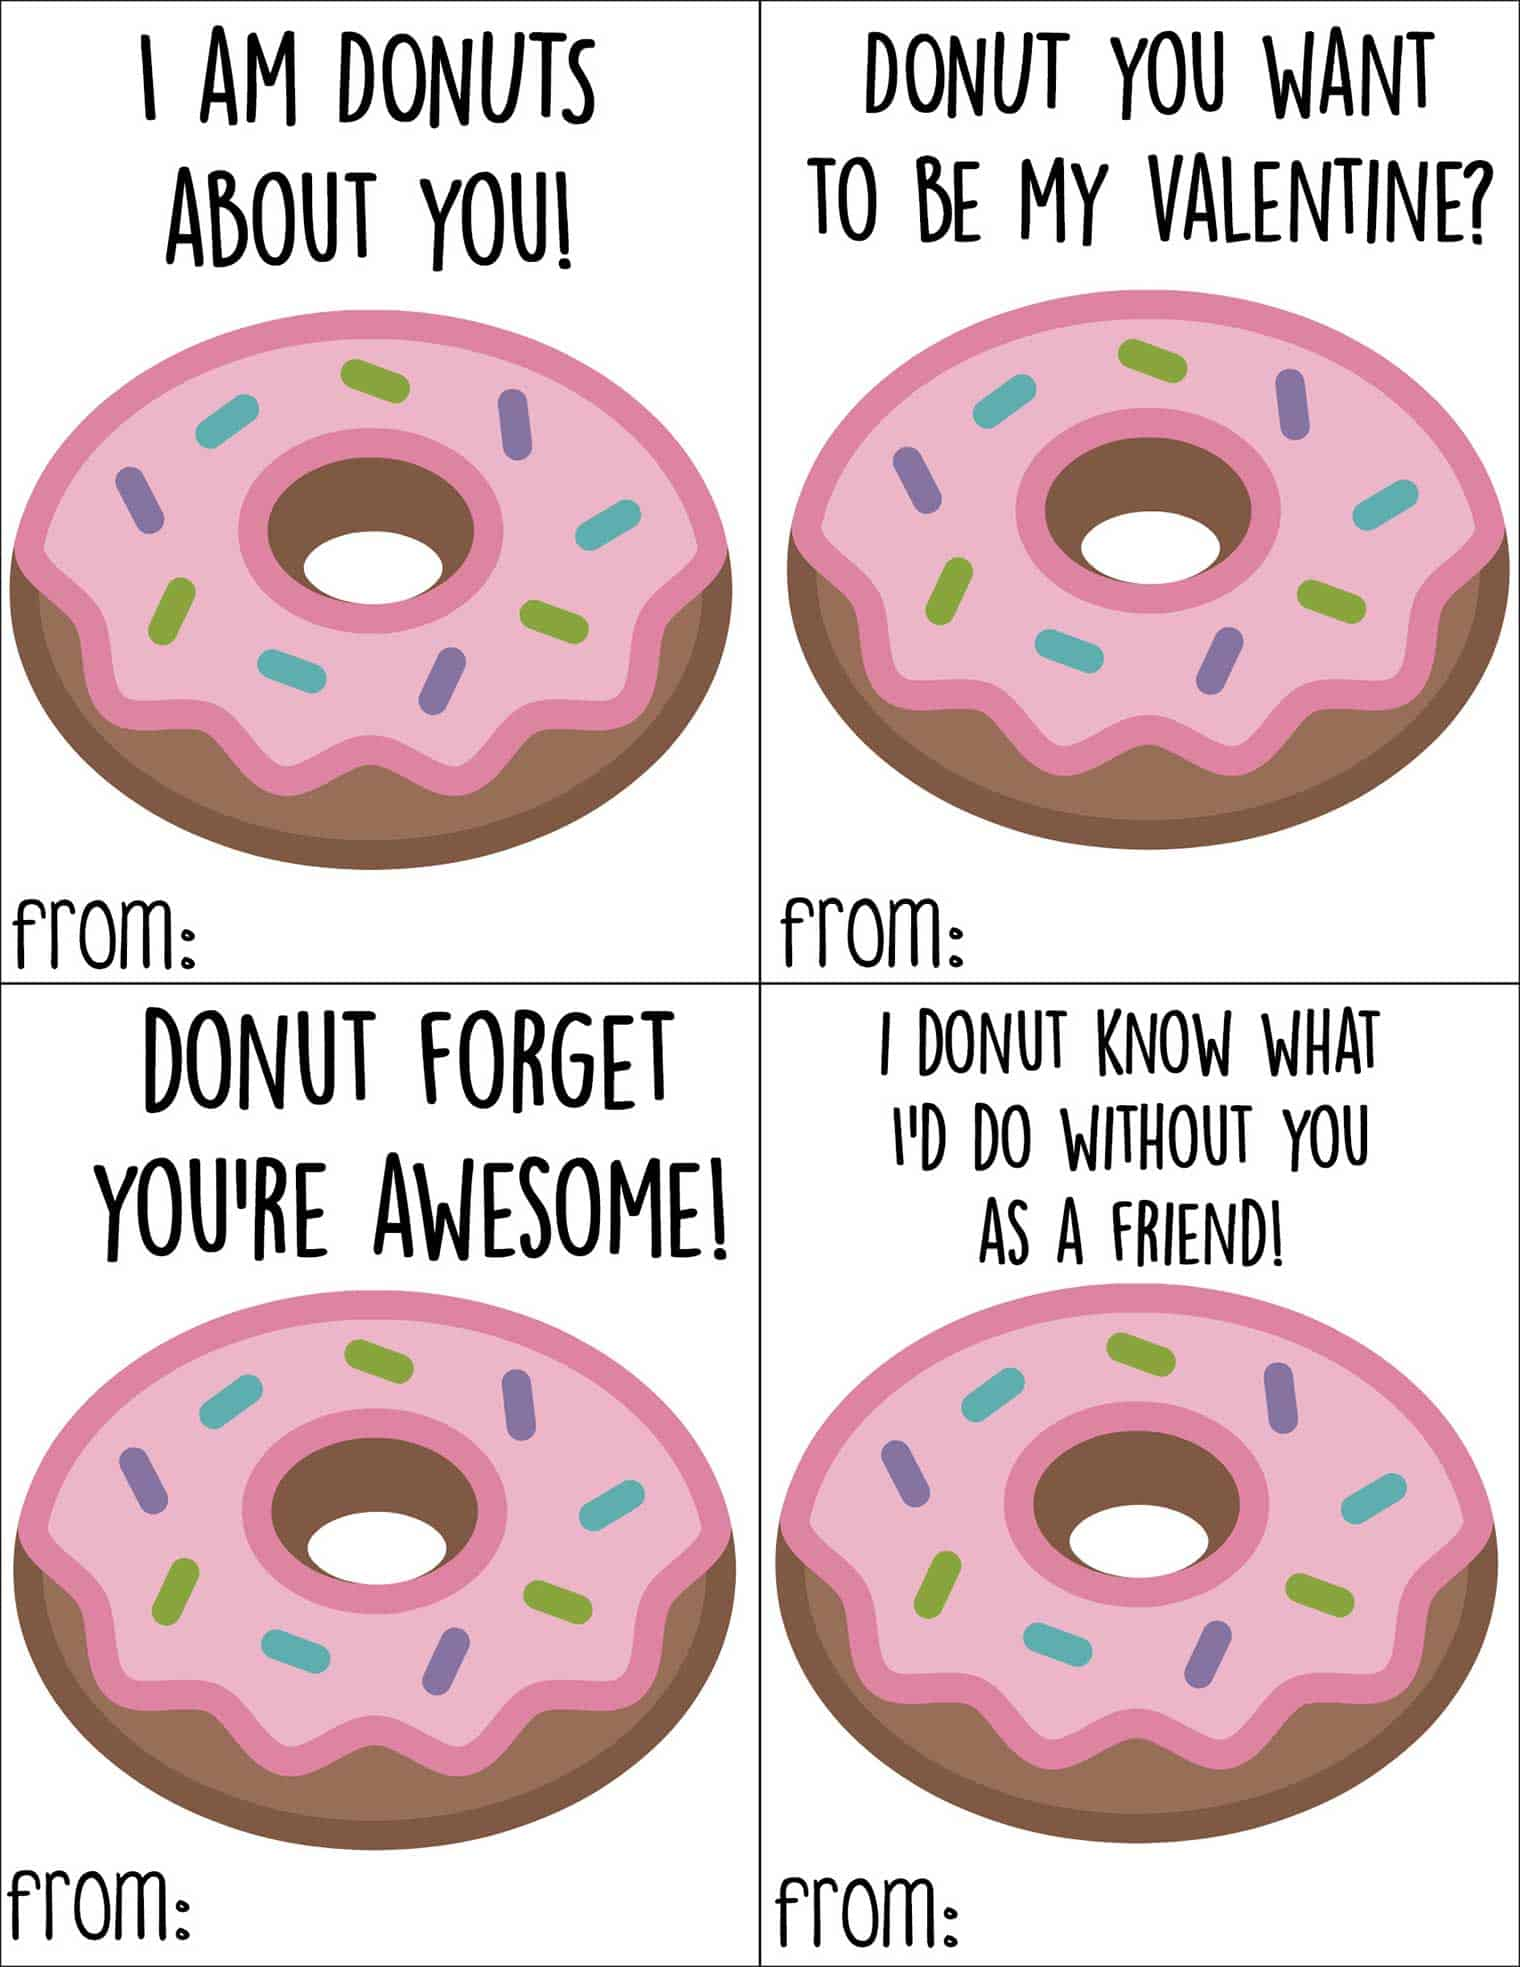 photograph regarding Donut Printable named Absolutely free Printable Donut Valentines Working day Playing cards